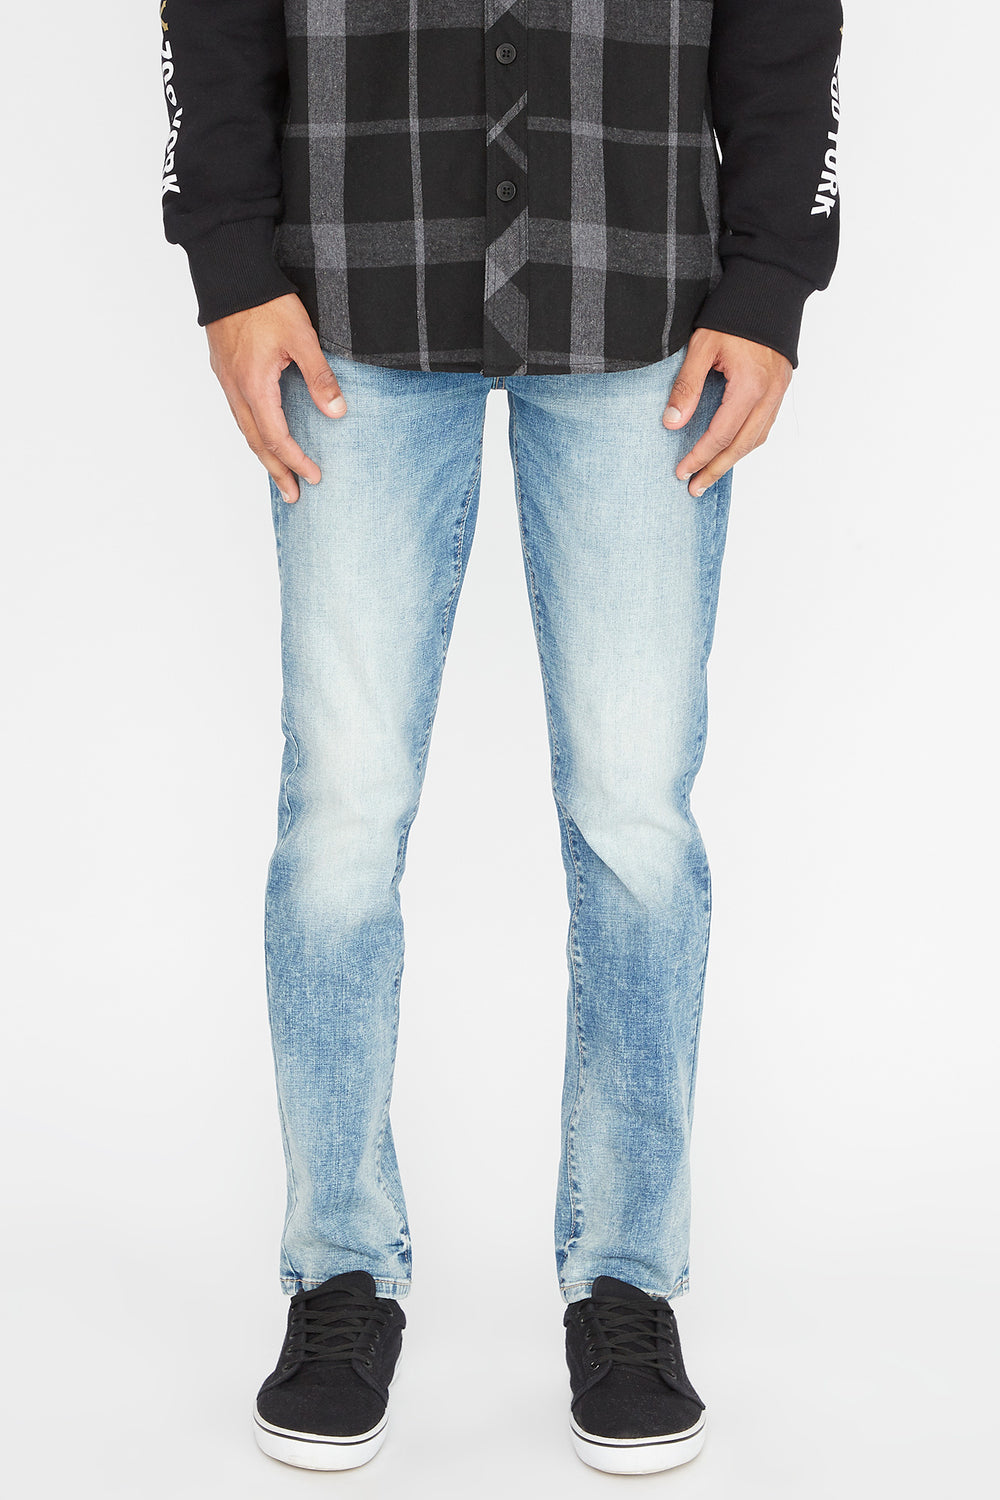 Zoo York Mens Slim Jeans Light Blue